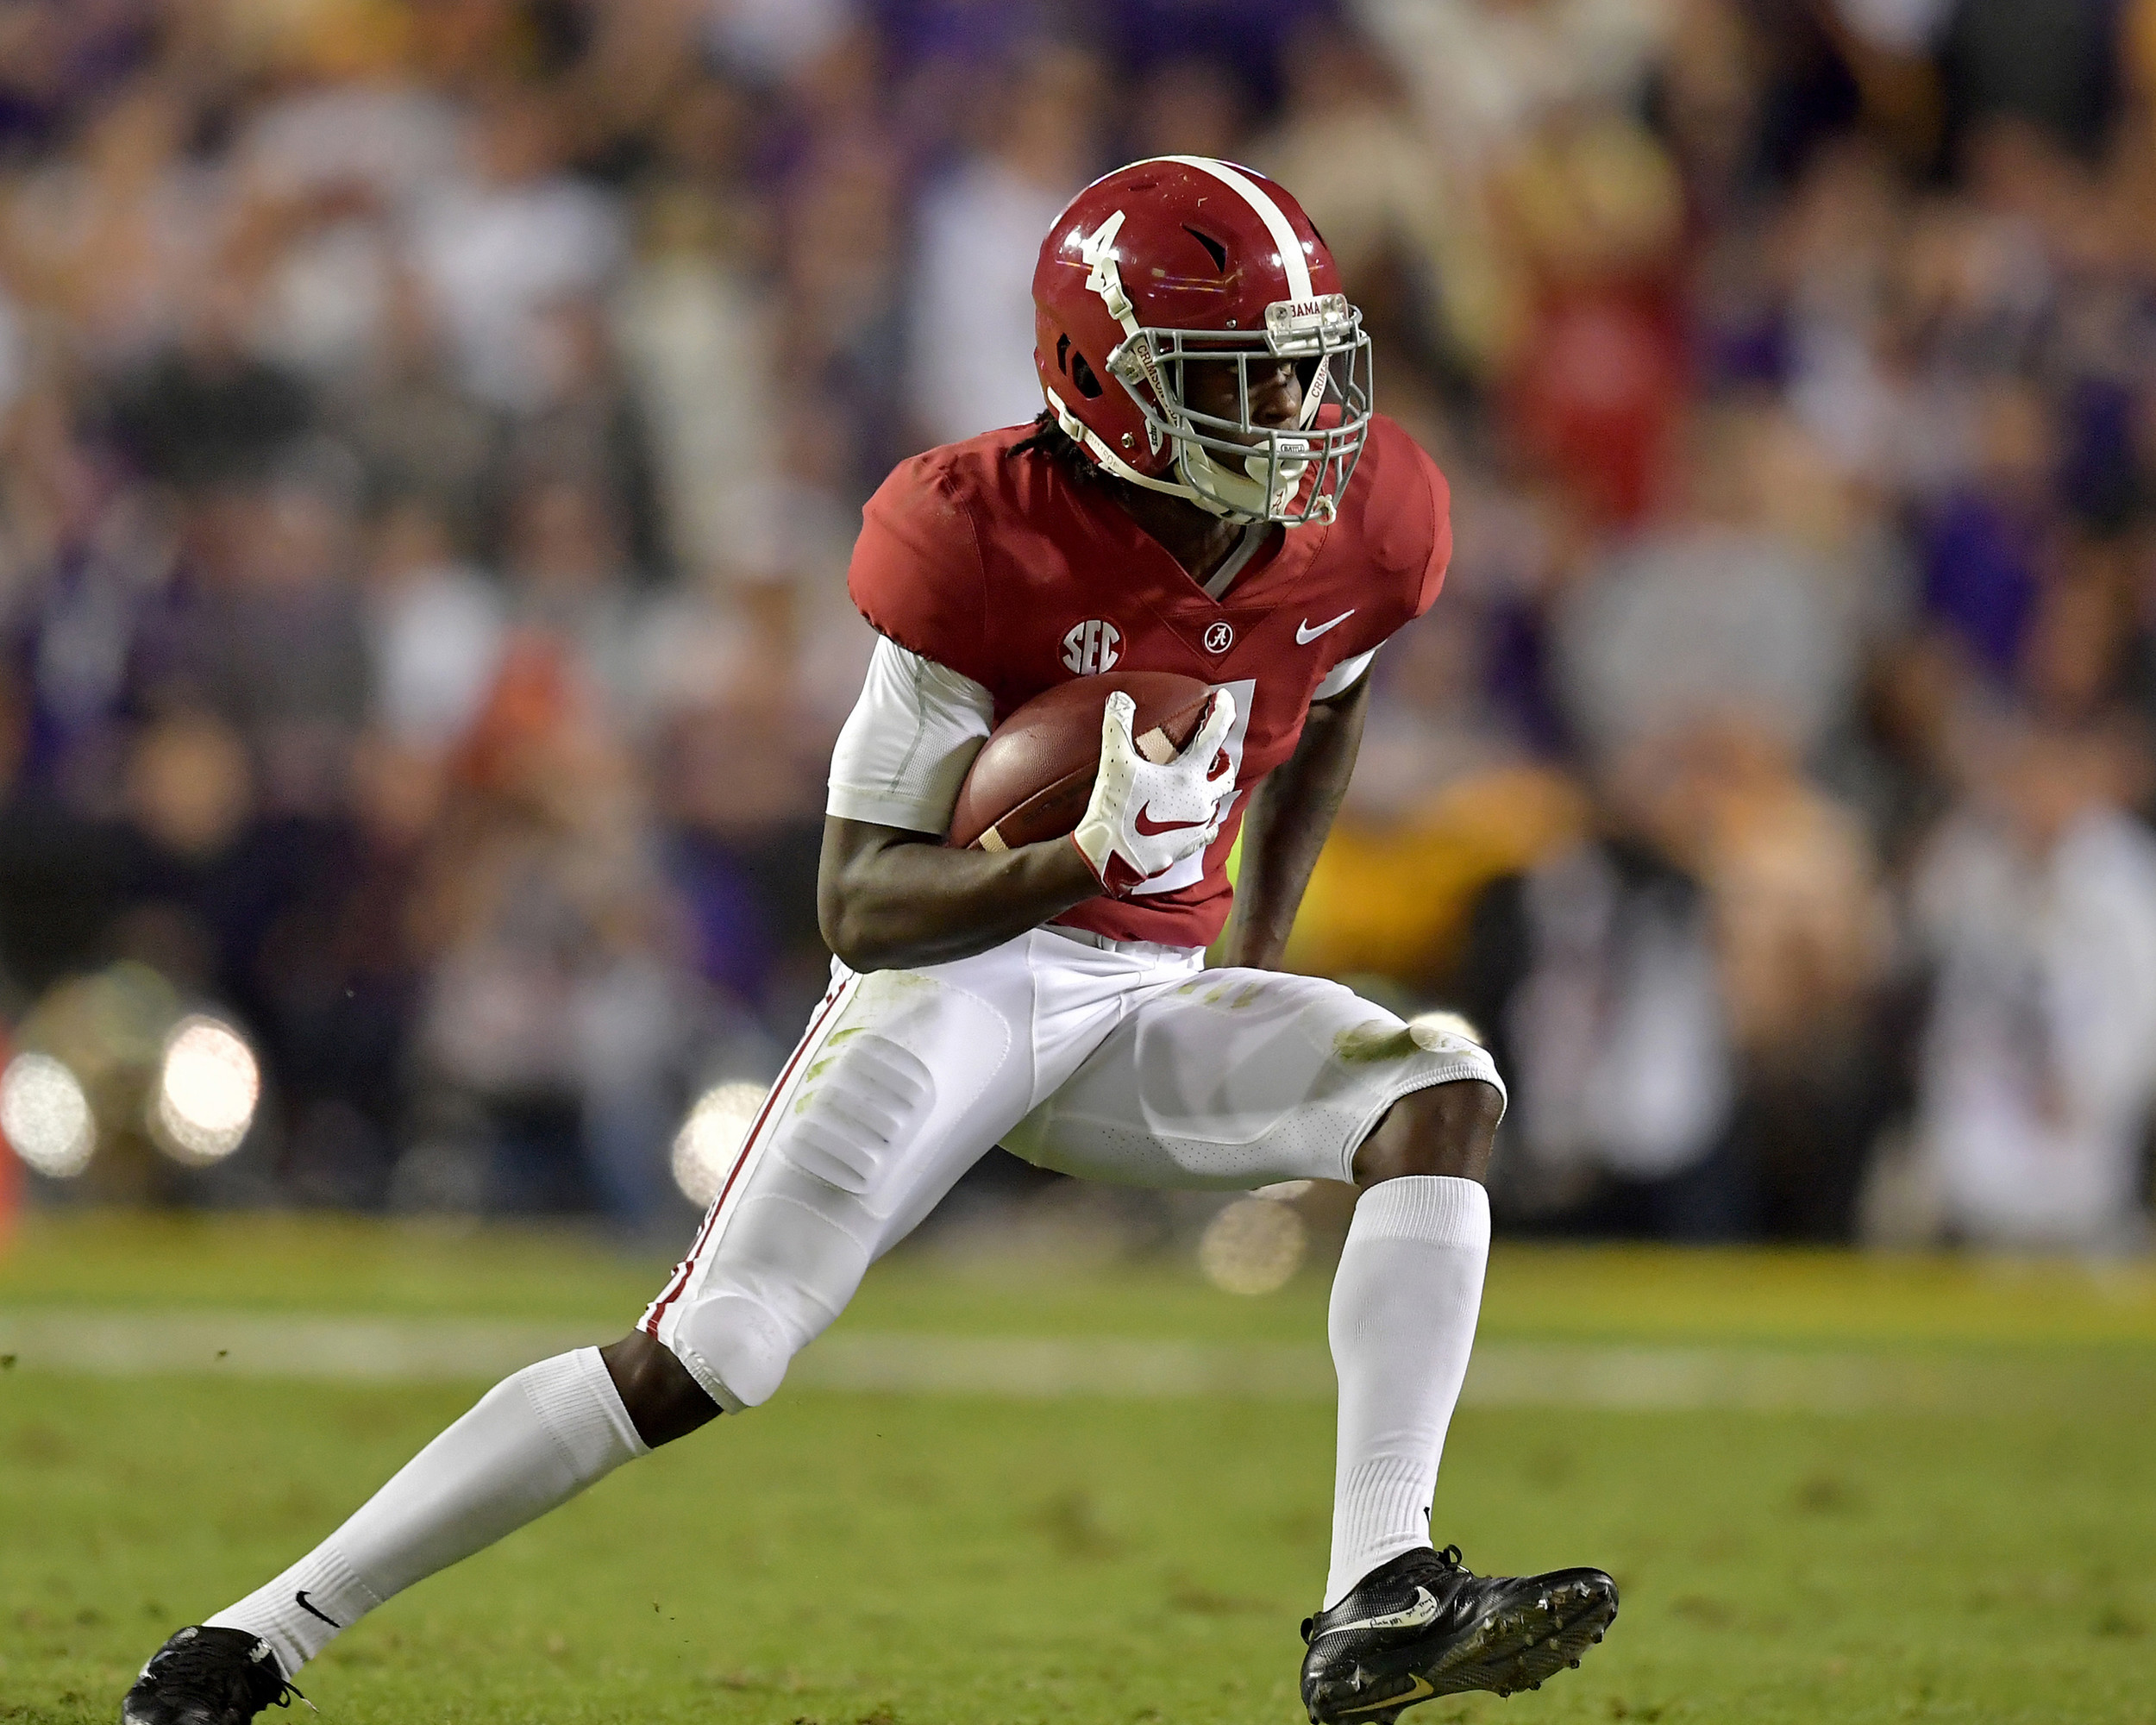 Alabama Crimson Tide wide receiver Jerry Jeudy (4) with a a reception and a long run in the first half of an NCAA football game against the LSU Tigers Saturday, November 3, 2018, at Tiger Stadium in Baton Rouge, La. Alabama wins 29-0. (Photo by Lee Walls)